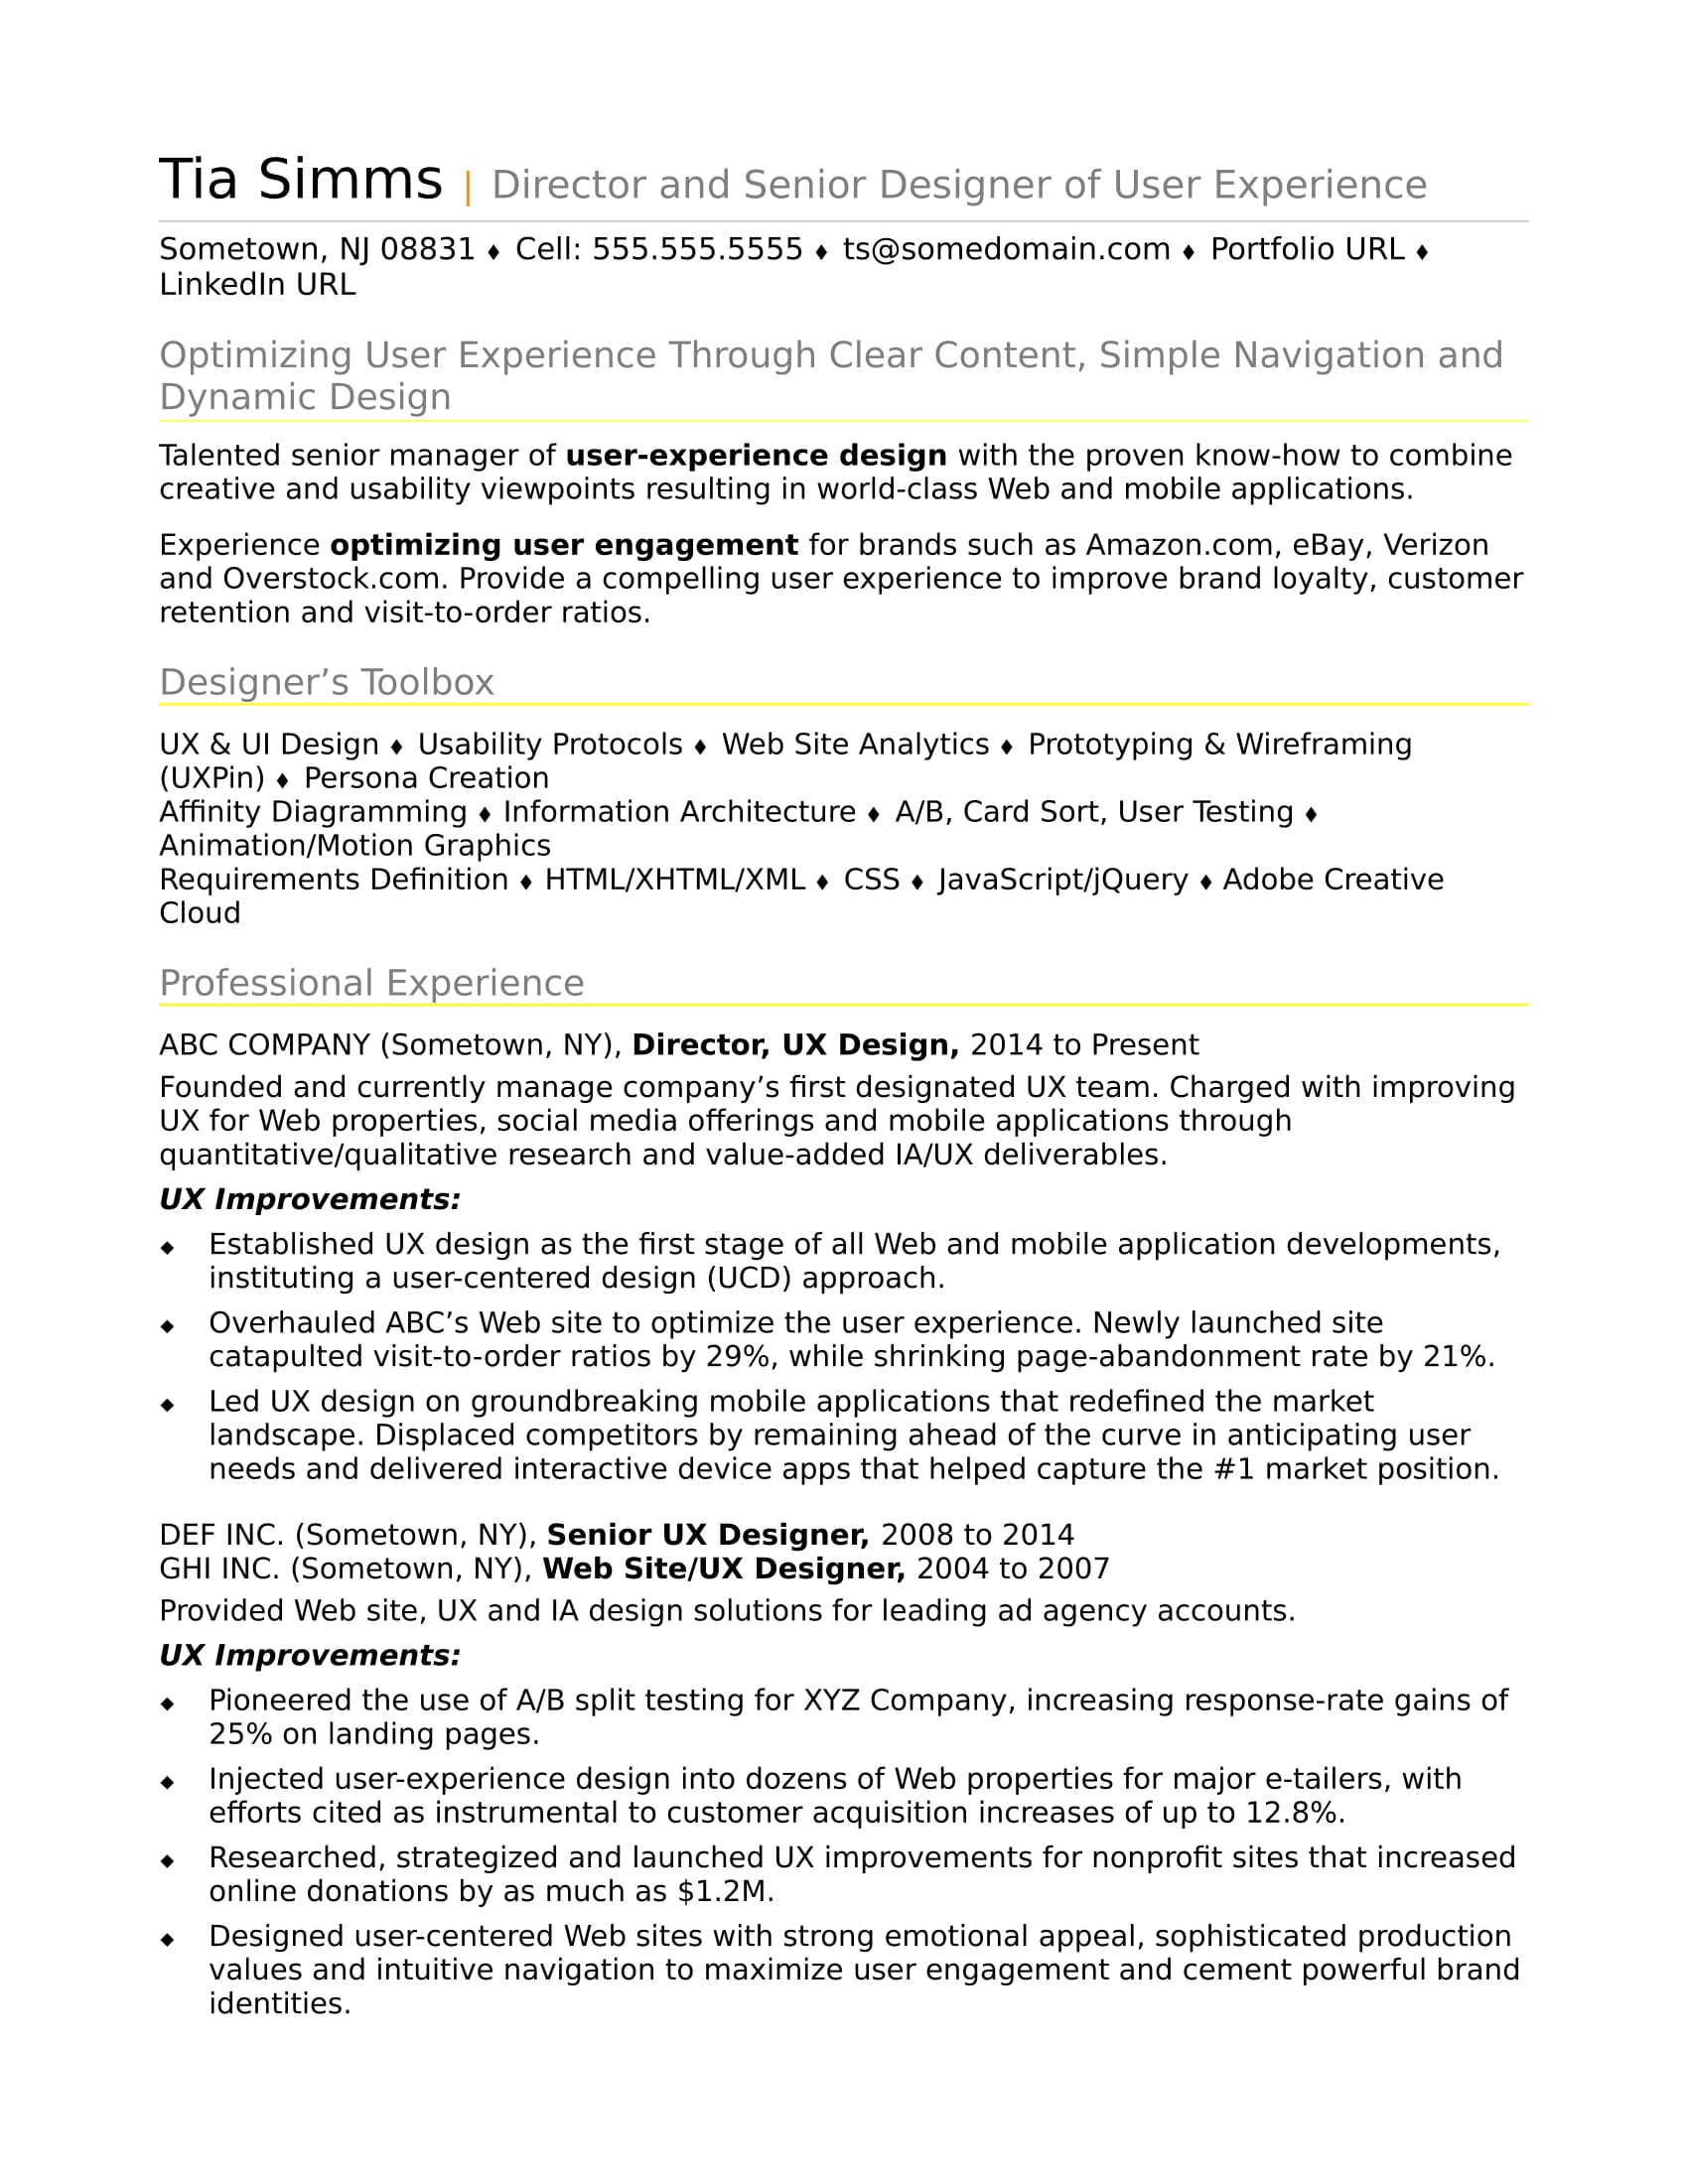 sample resume for an experienced ux designer monster of technical skills examples Resume Resume Of An Experienced Person